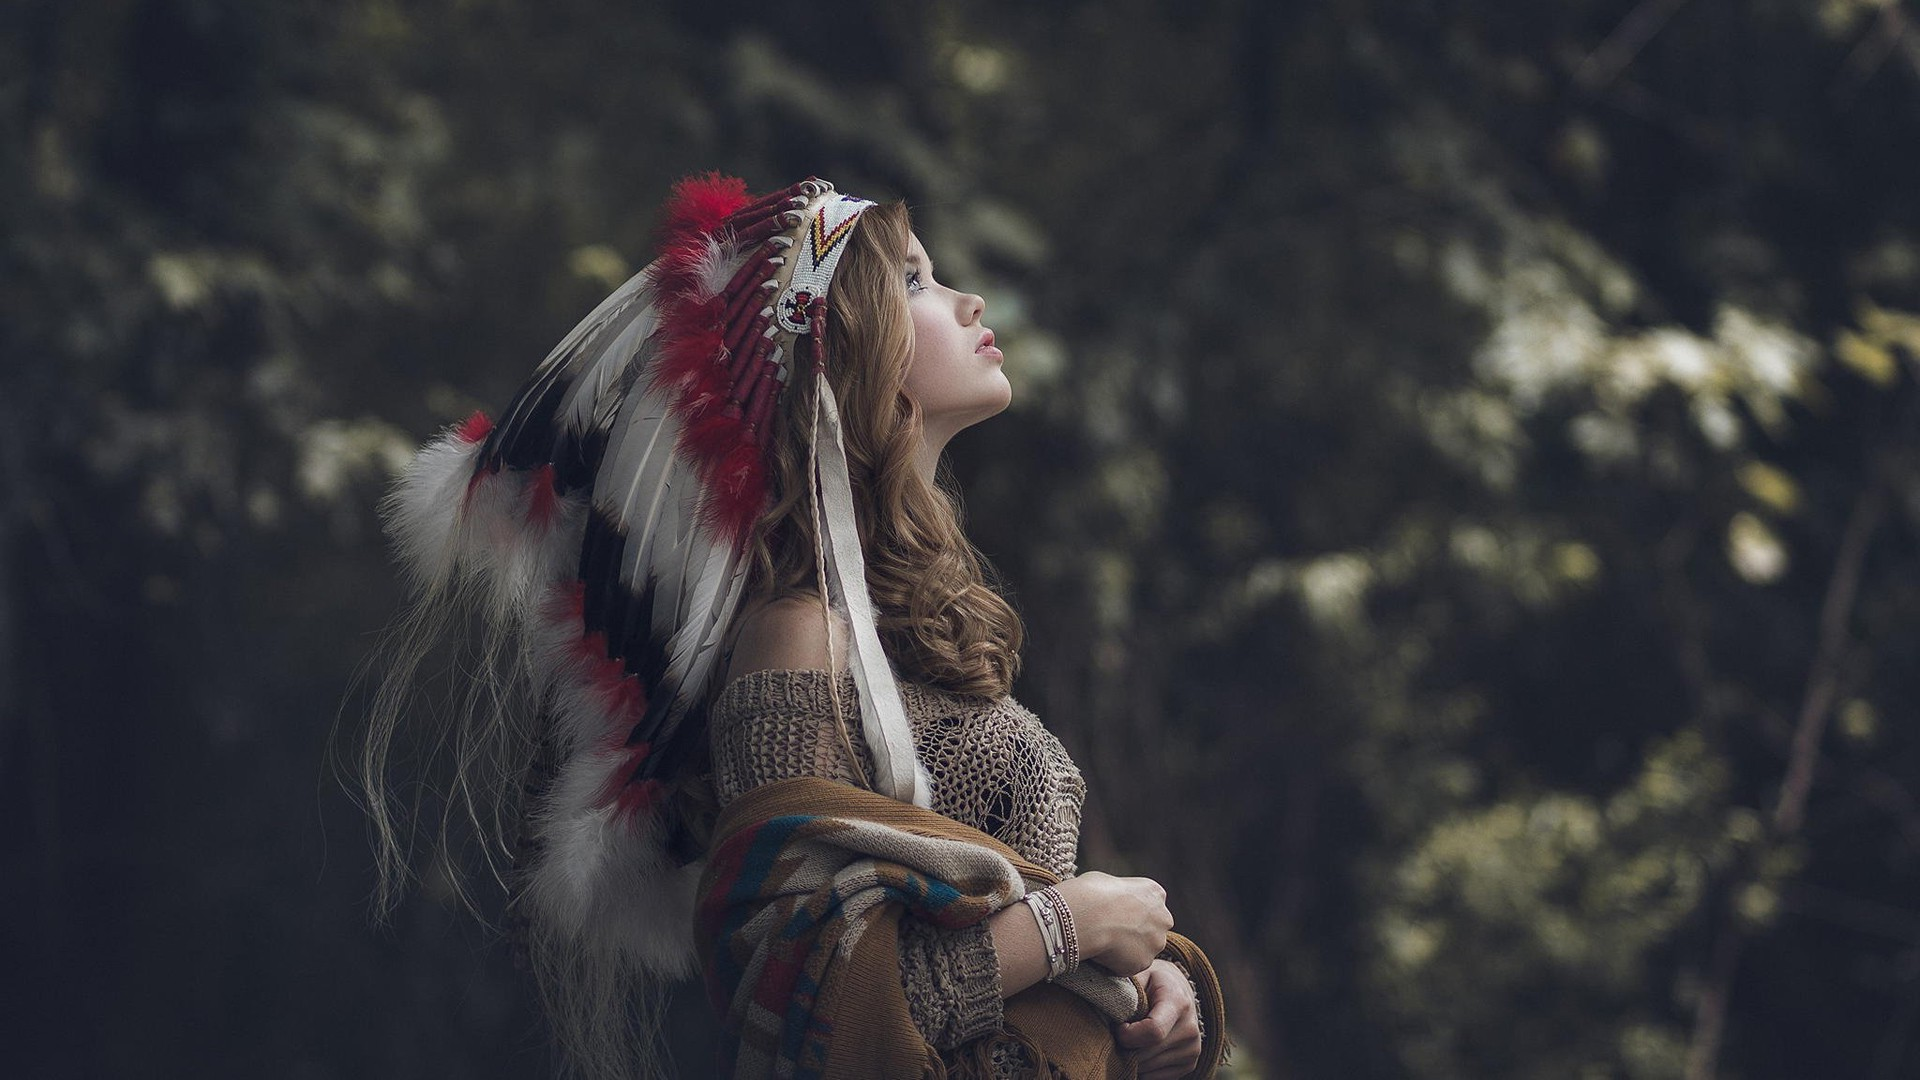 Cars 2 Movie Wallpapers Hd Native Americans Brunette Nature Headdress Profile